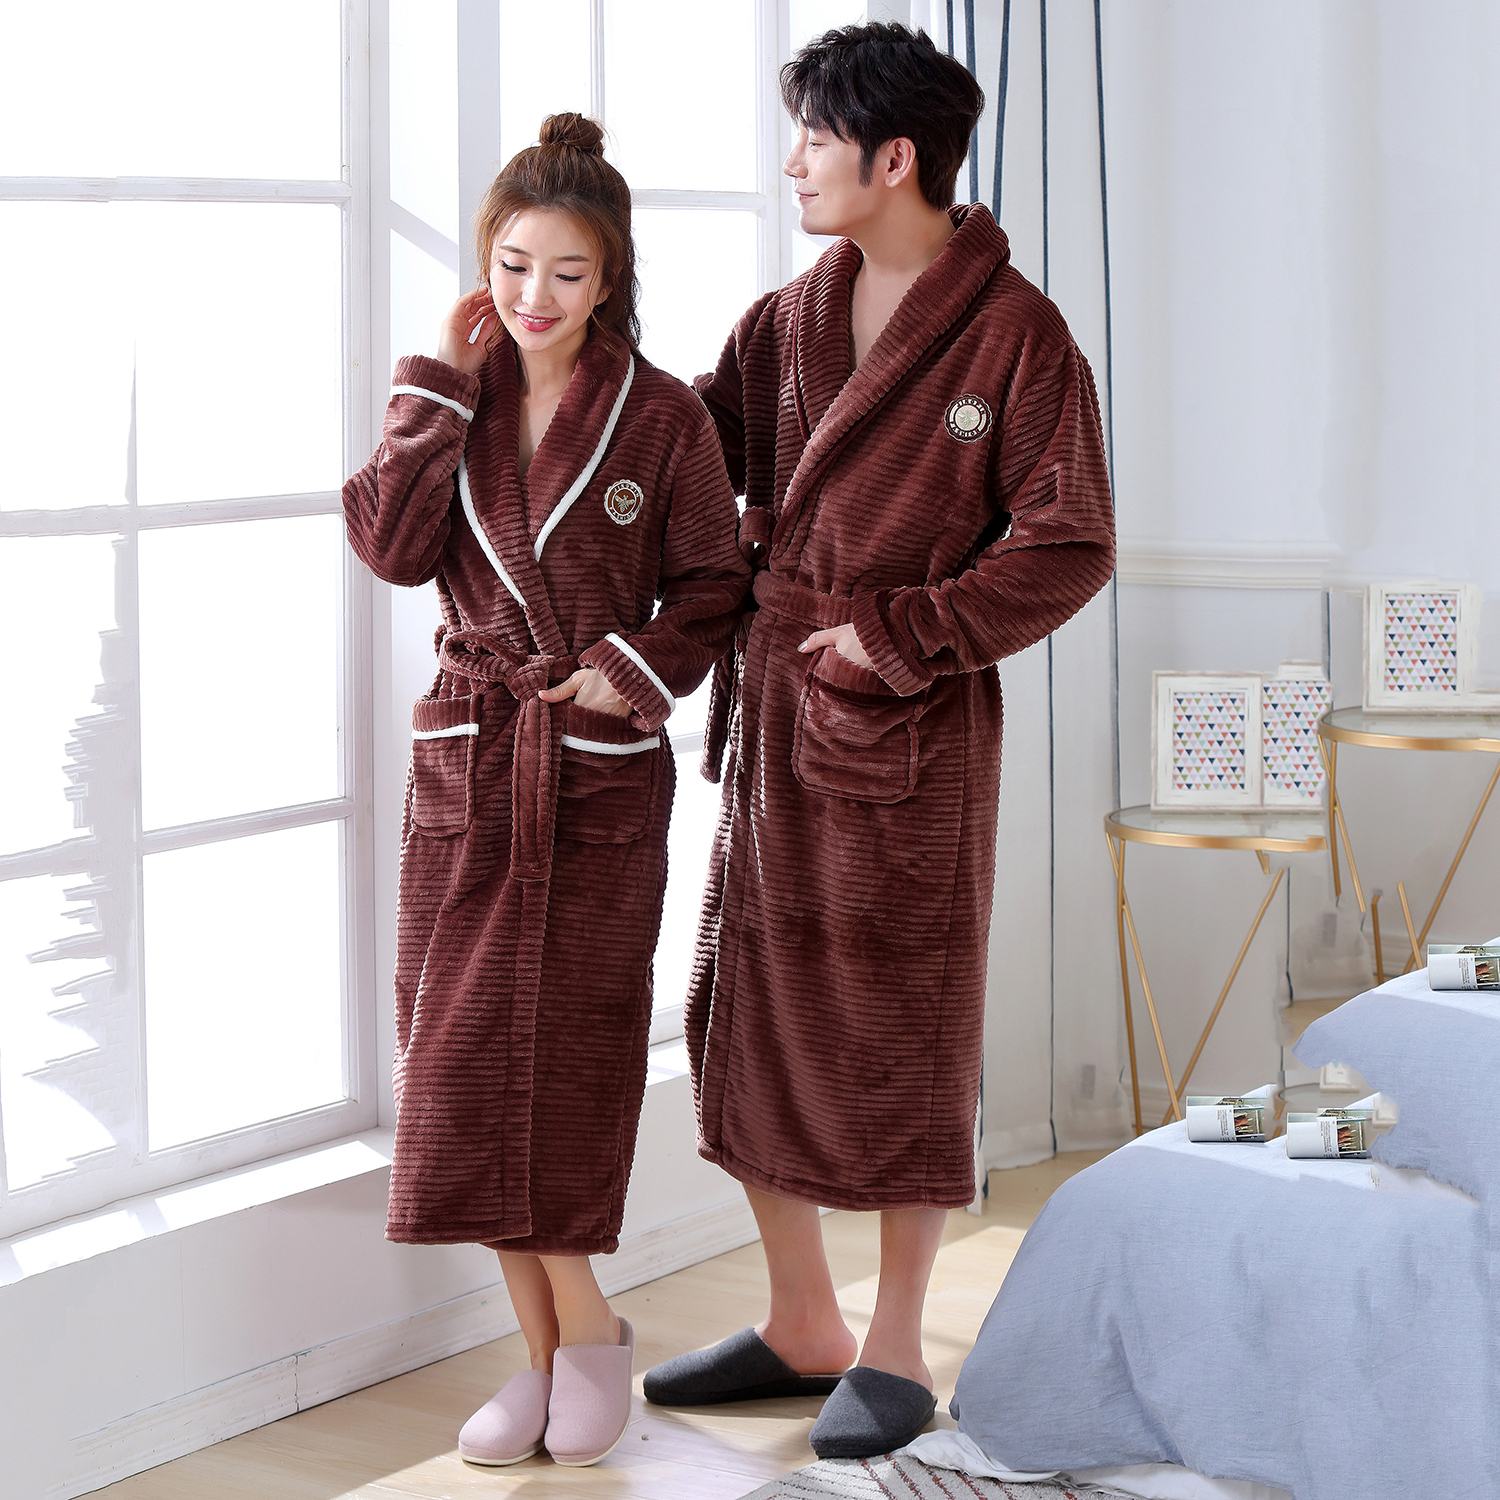 Plus Size 3XL Couple Sleepwear Robe Gown Solid Colour Home Dressing Gown Full Sleeve Intimate Lingerie Brown Sleepwear Nightgown